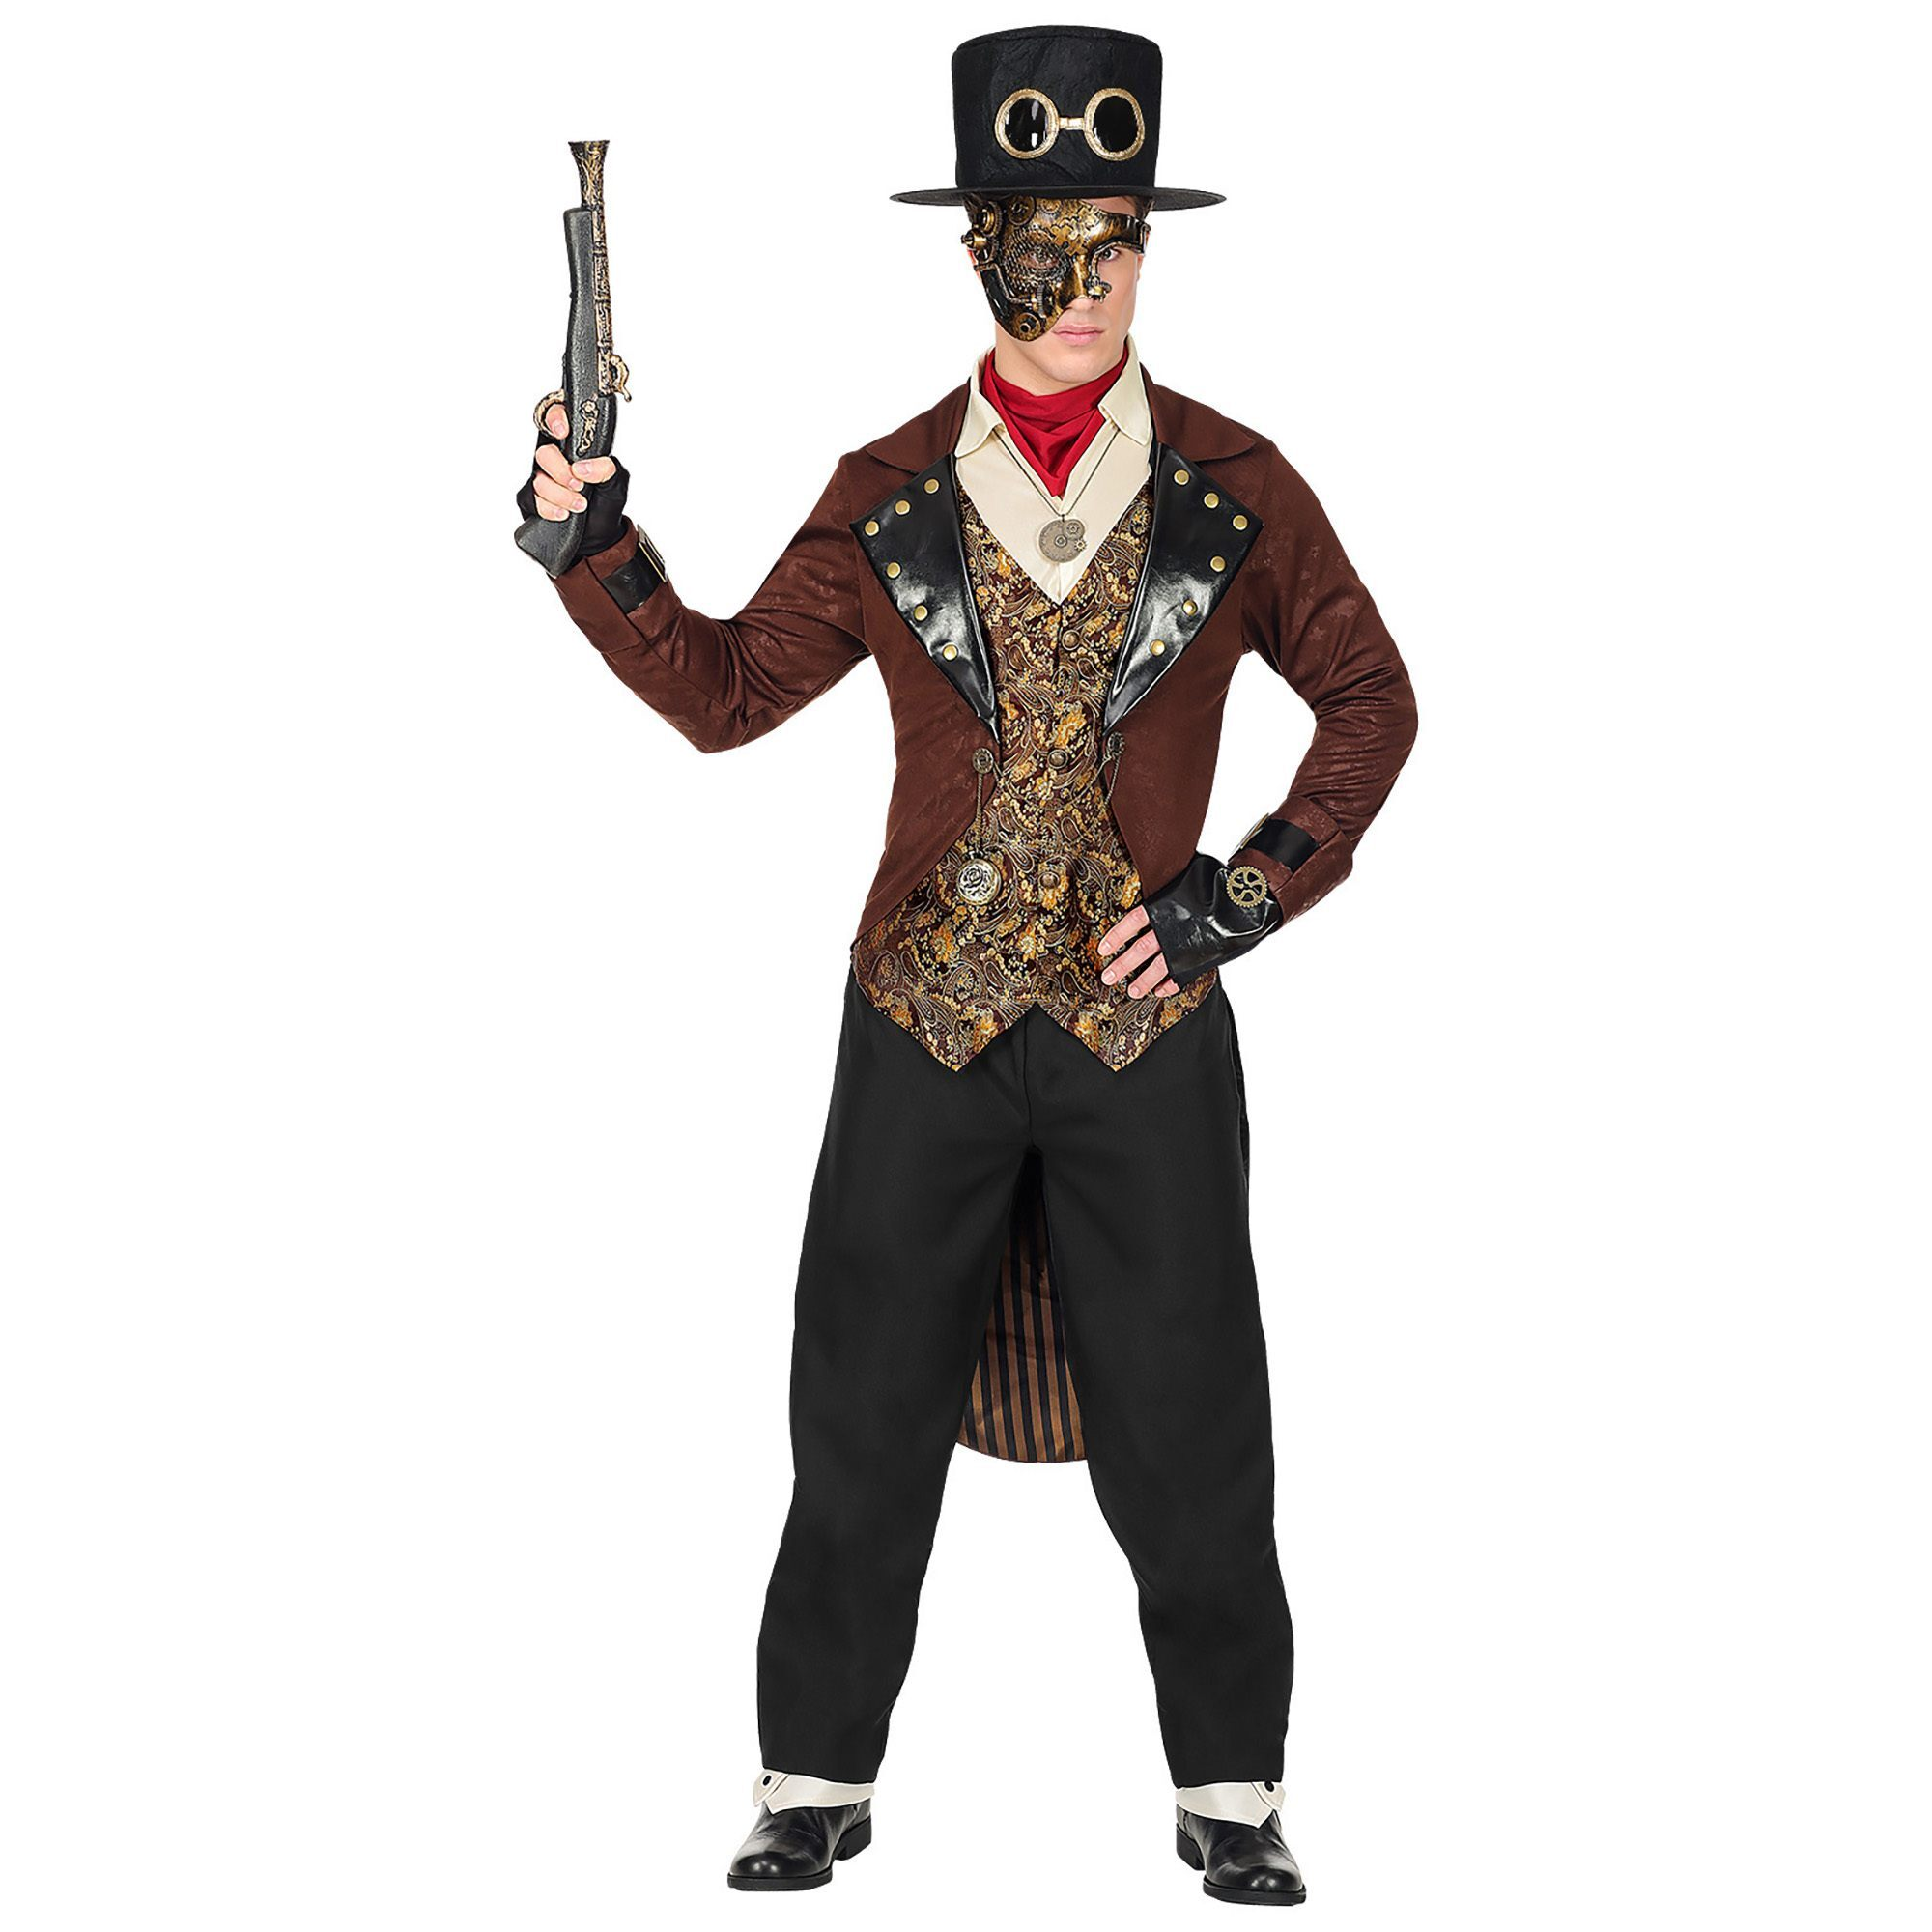 Slipjas Bruin steampunk man outfit